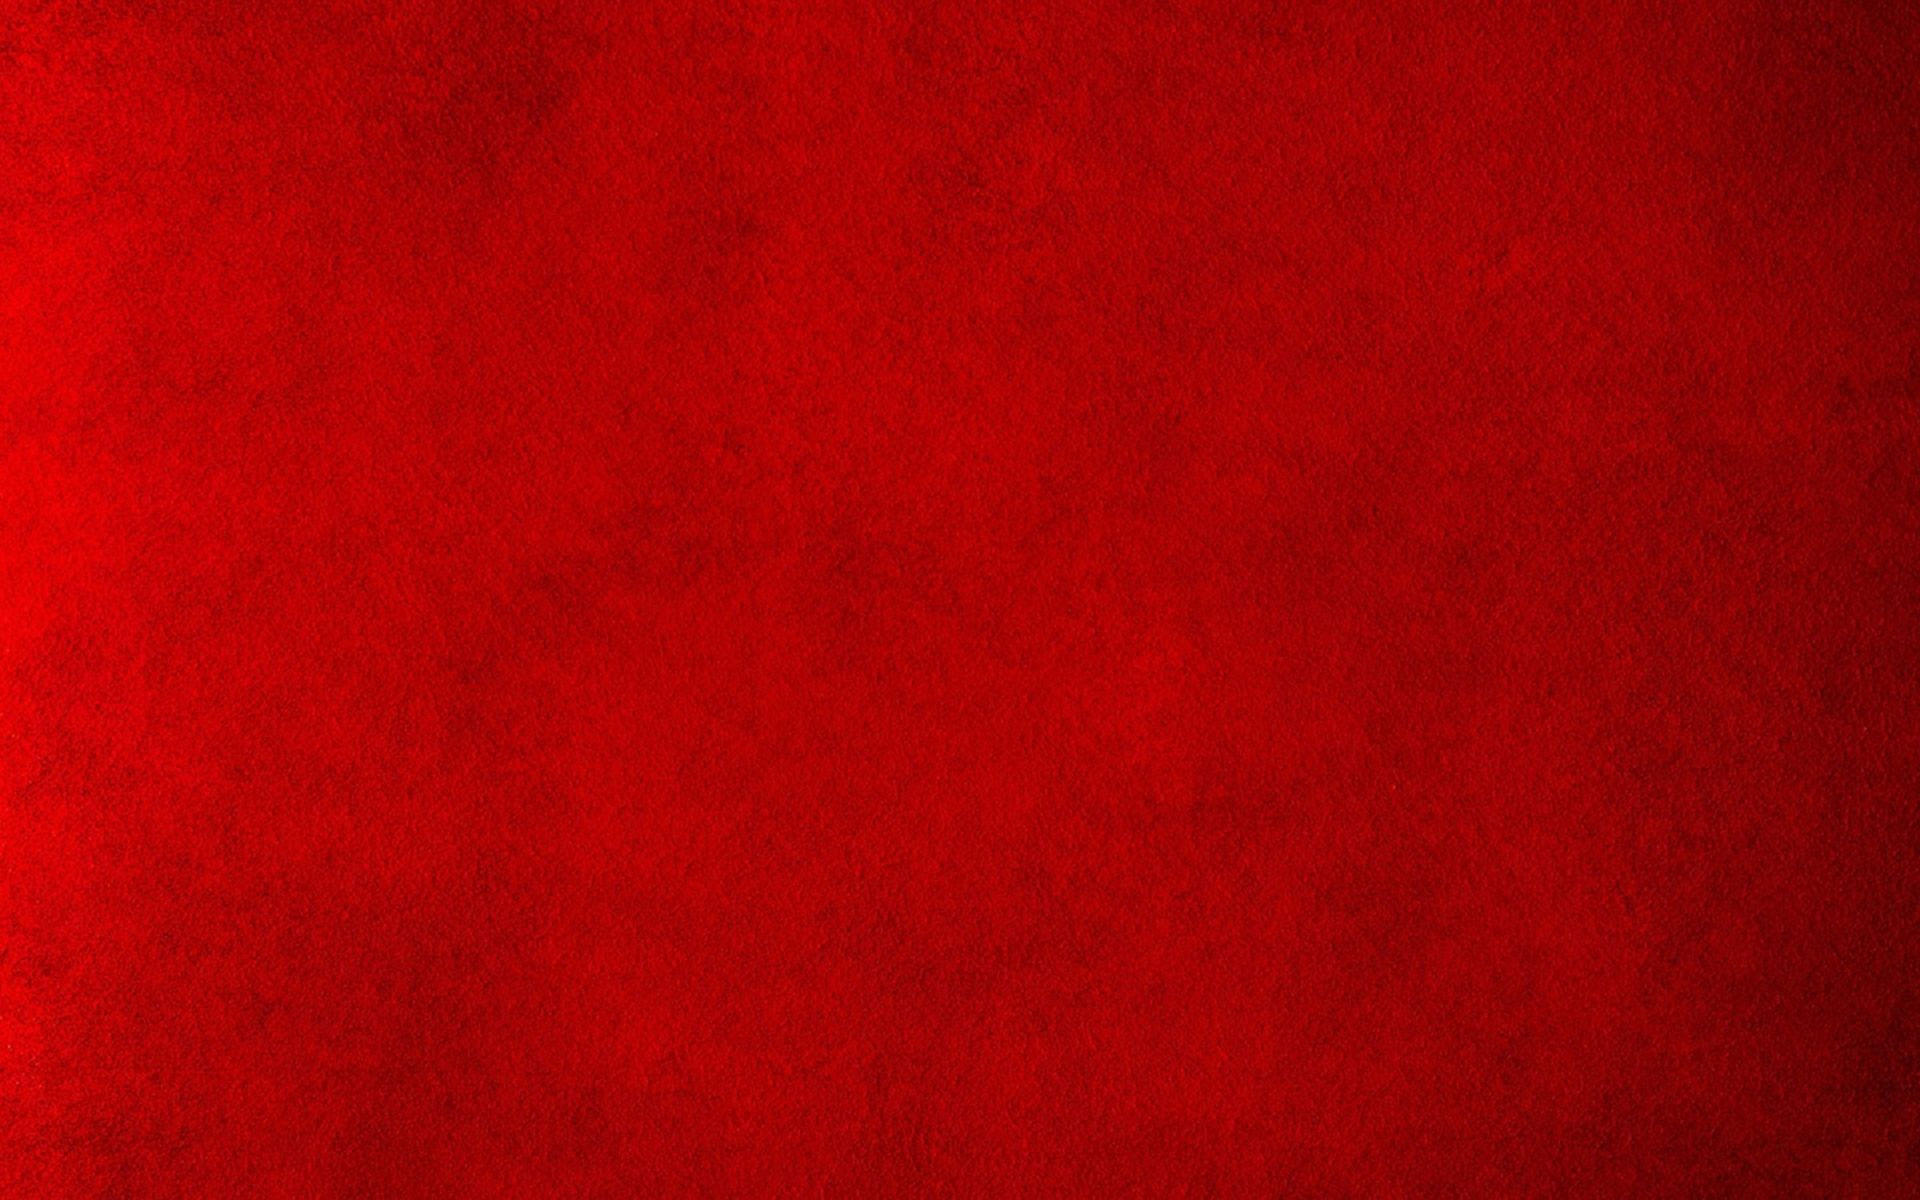 Plain Red Wallpaper HD